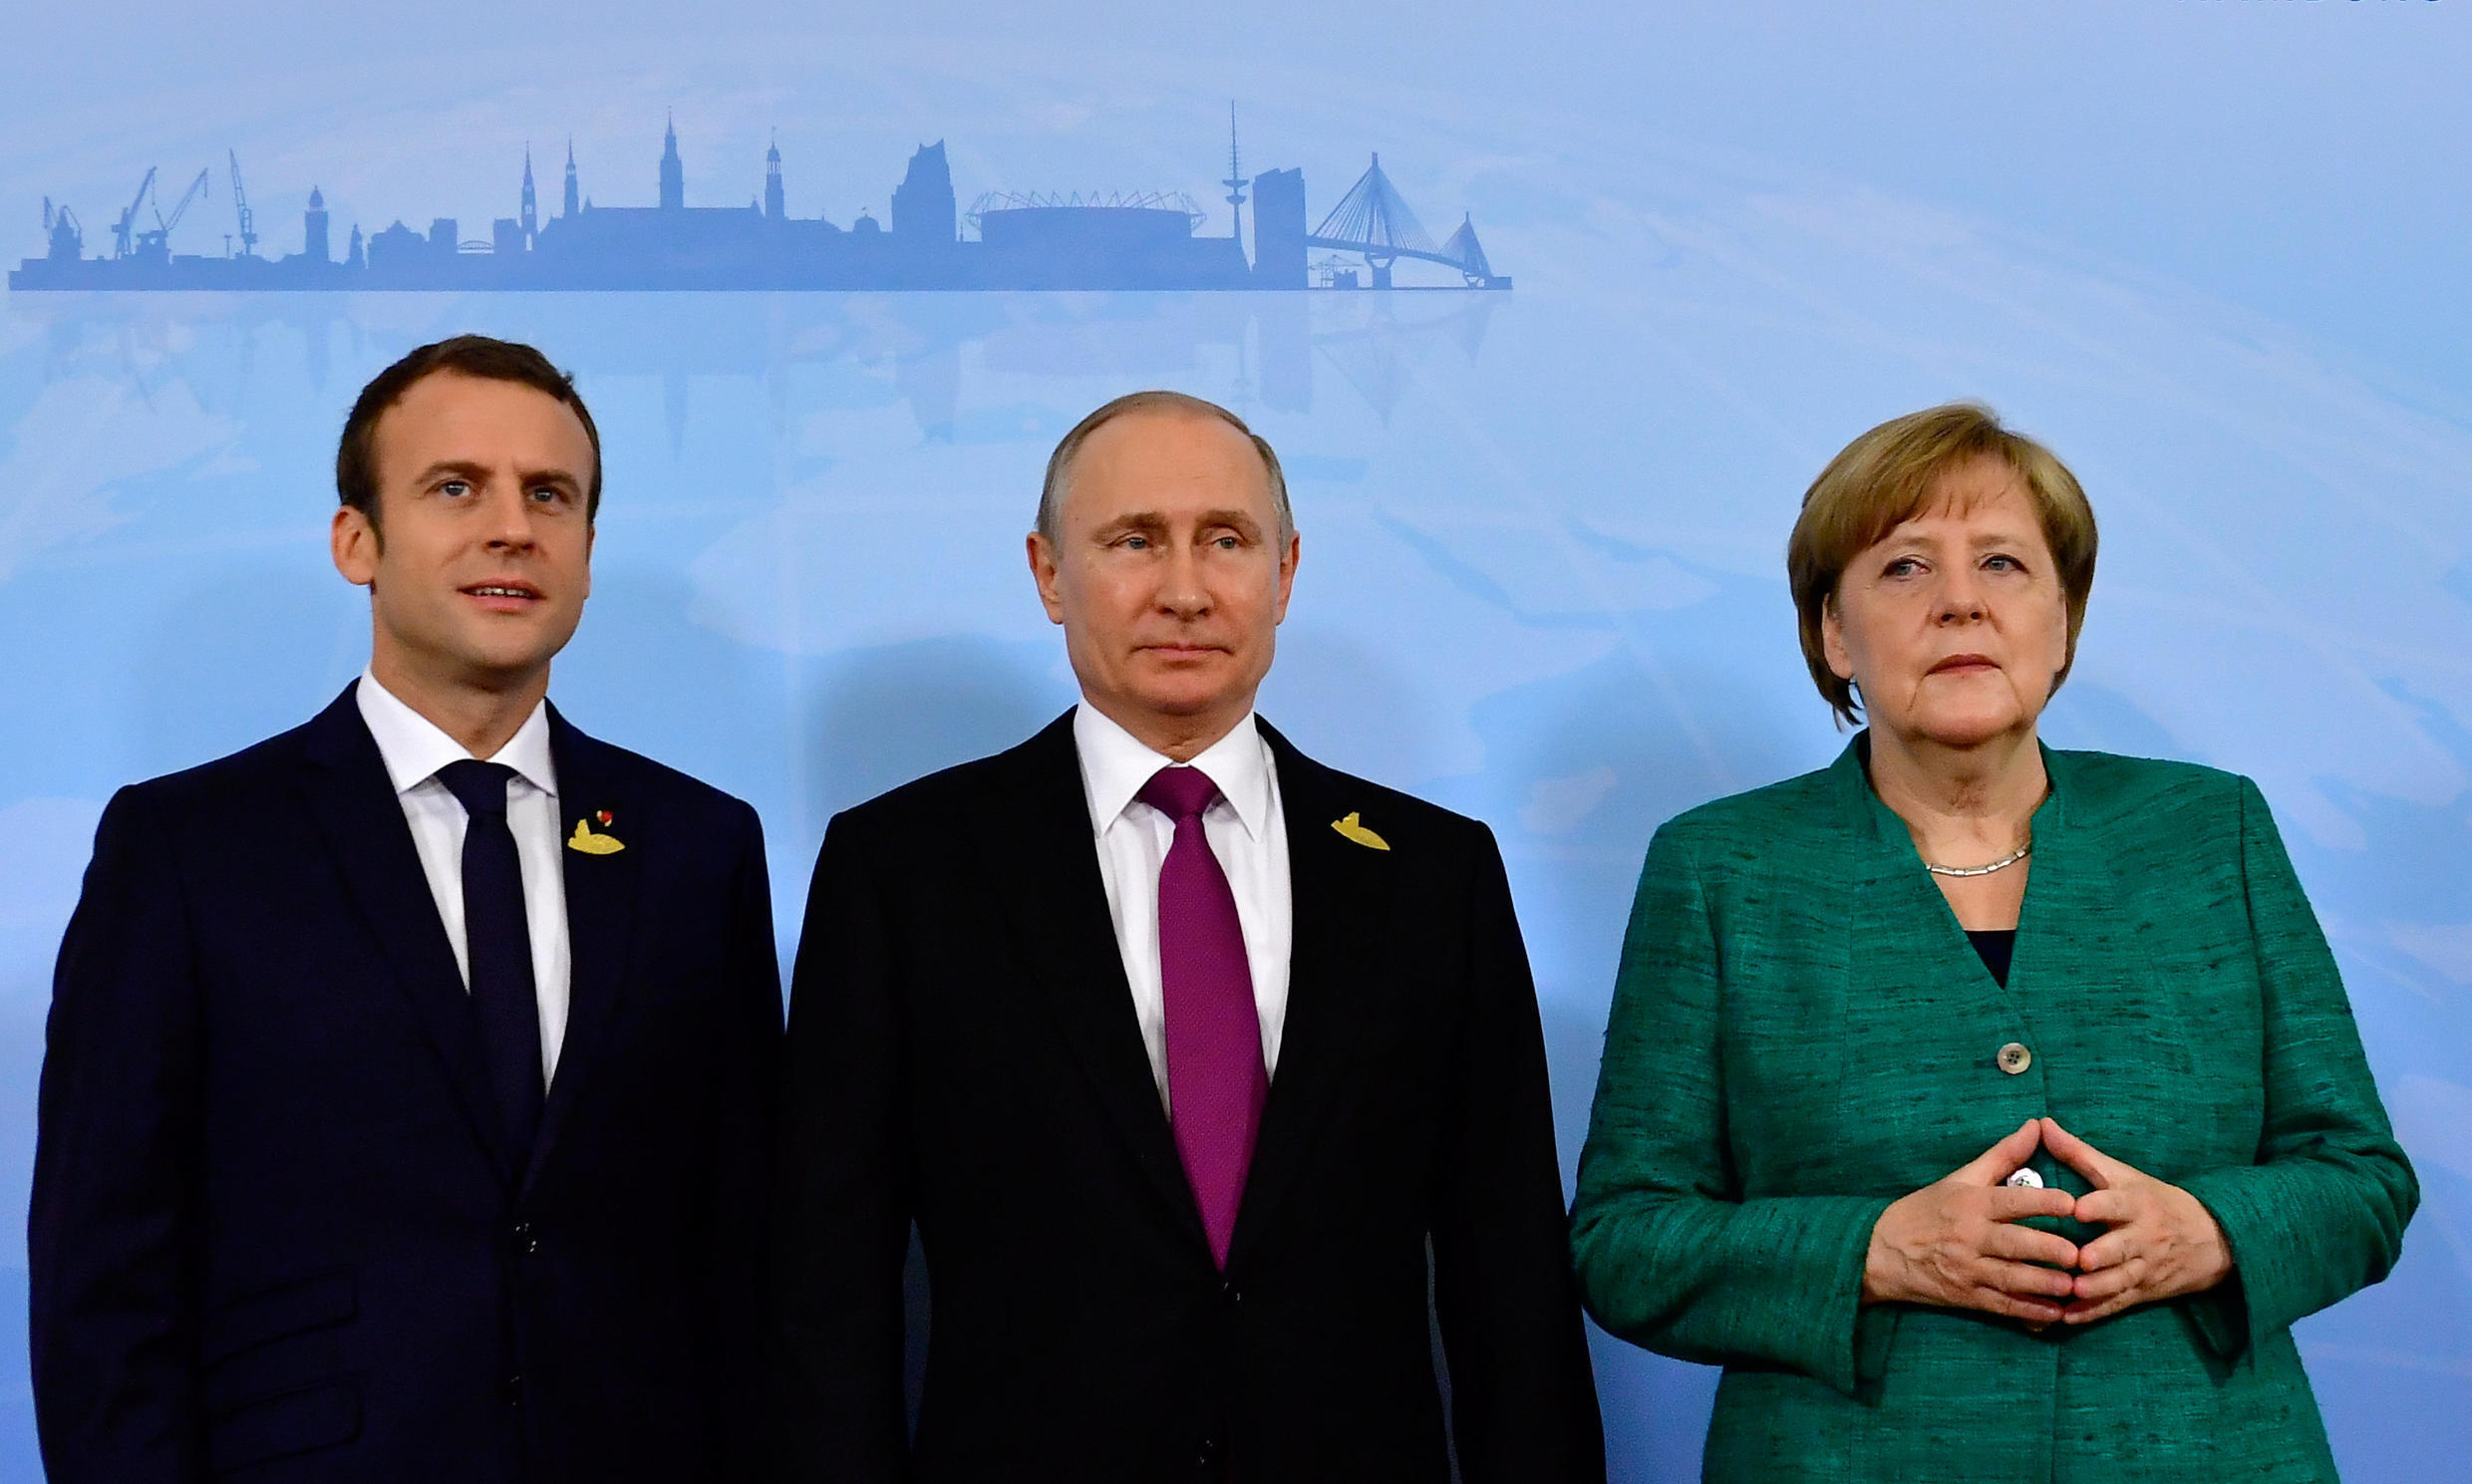 French President Emmanuel Macron, Russian President Vladimir Putin and German Chancellor Angela Merkel during a G20 leaders summit in Hamburg, Germany, 8 July 2017. The three leaders discussed Covid vaccine cooperation an various global conflicts during a conference call on Tuesday evening.